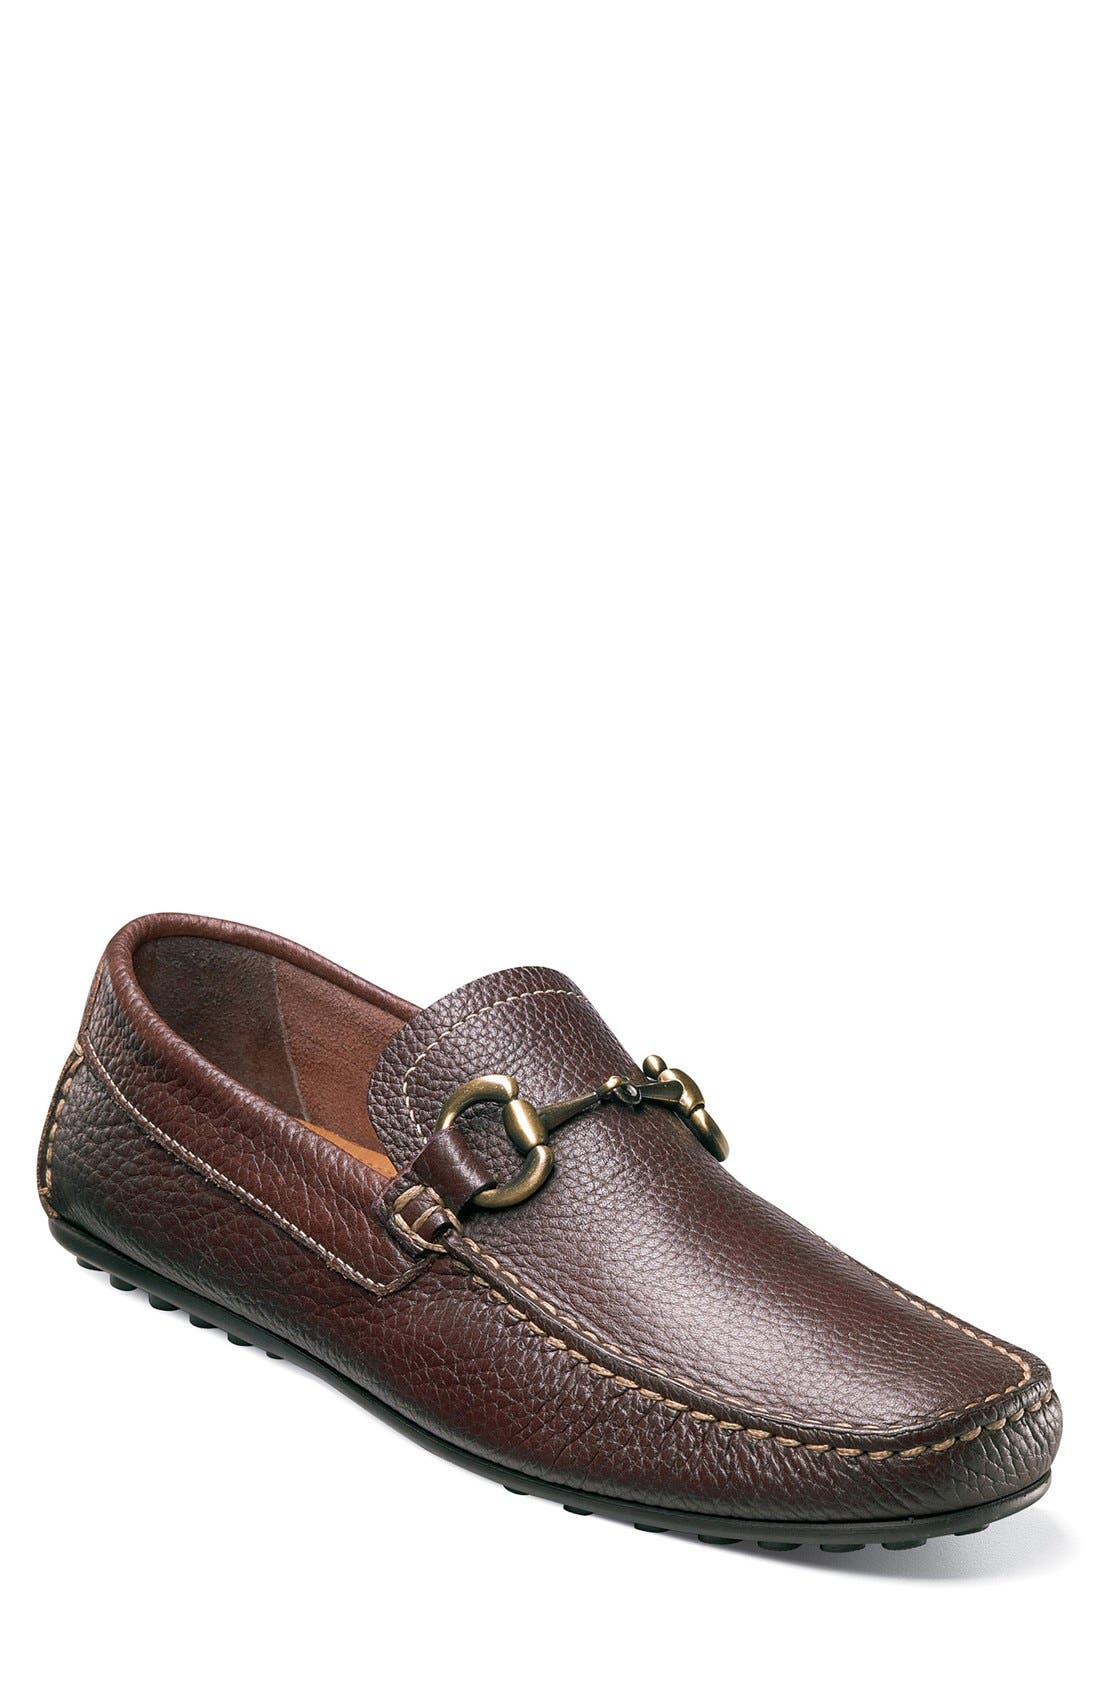 'Danforth' Driving Shoe,                             Main thumbnail 1, color,                             Brown Leather